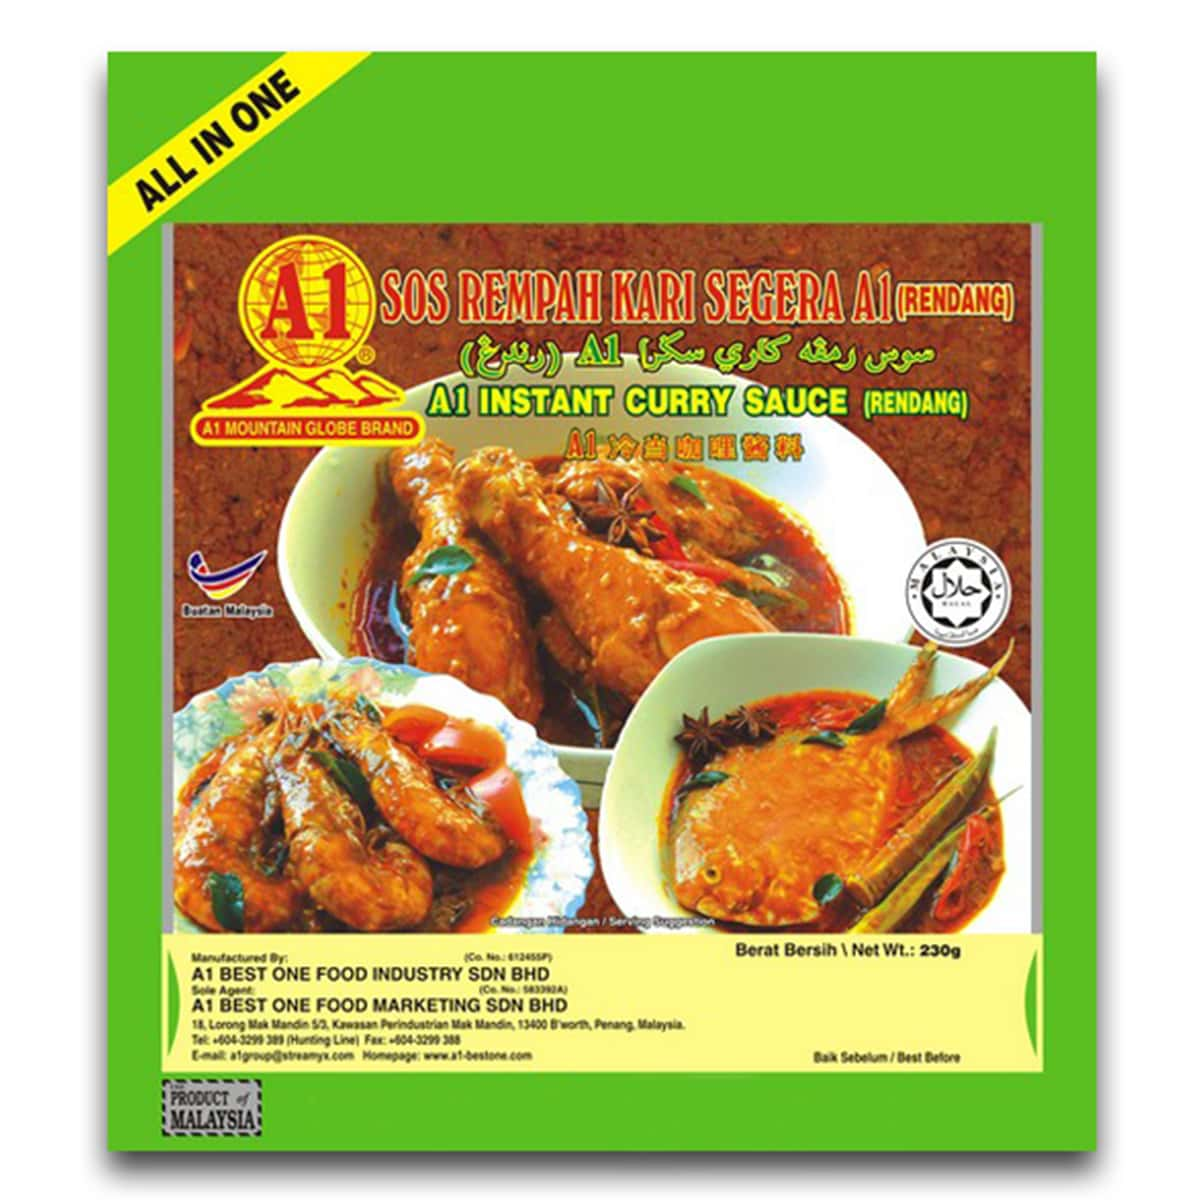 Buy A1 Mountain Globe Brand Instant Curry Sauce (Rendang) - 230 gm